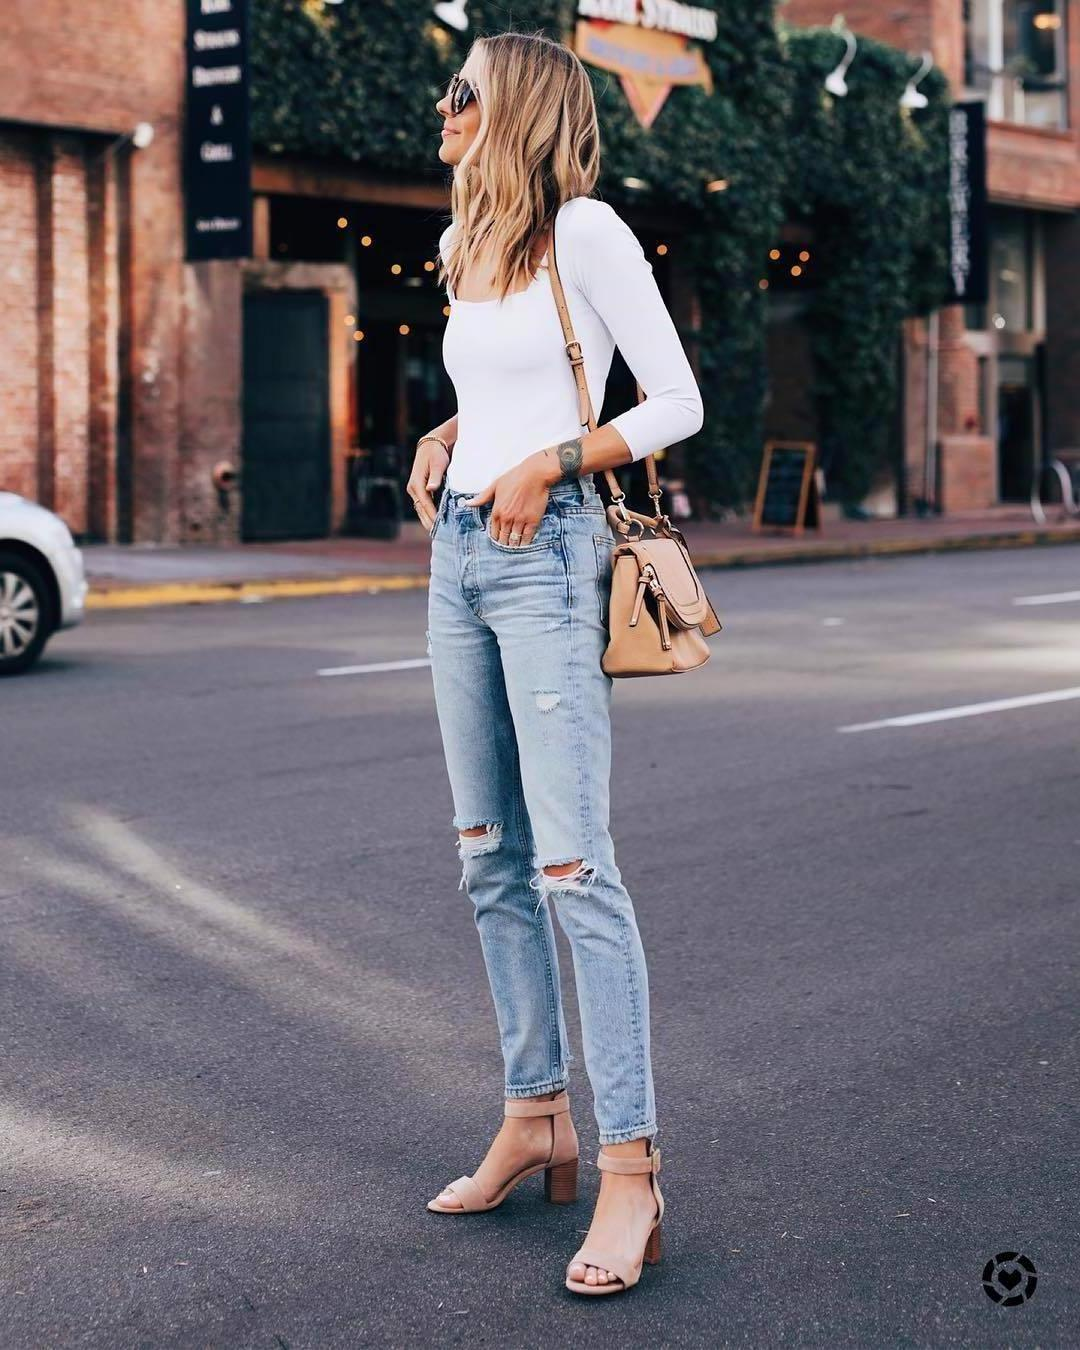 61037b11ac76 Jeans Denim Jeans Ripped Jeans High Waisted Jeans Straight Jeans Sandal  Heels White Long Sleeves Shoulder